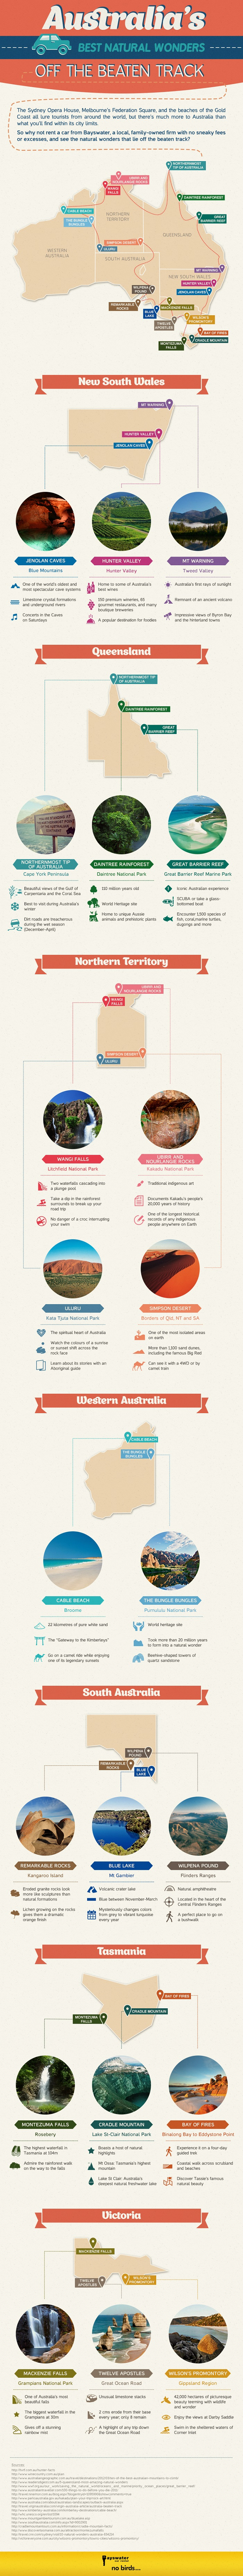 Australia's Natural Wonders (Infographic)